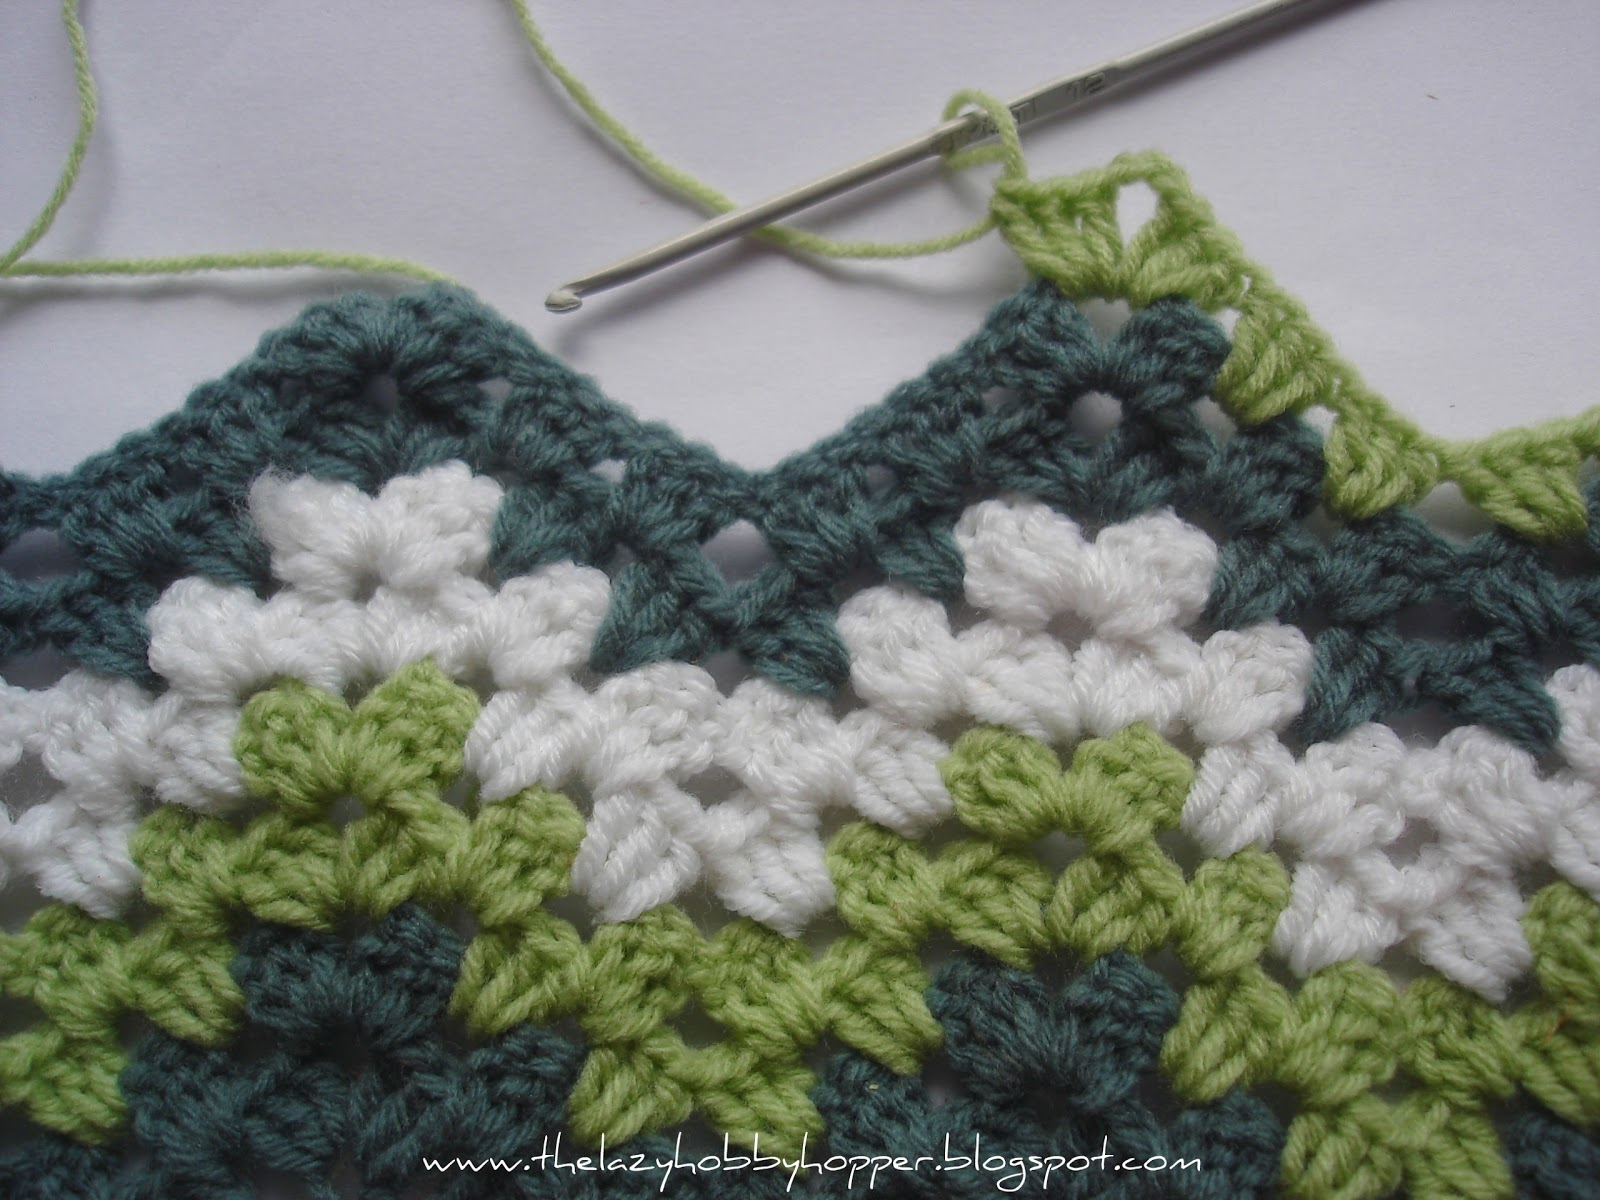 Crochet Stitches How To Videos : ... many of you who can crochet fairly well may not know how to crochet a